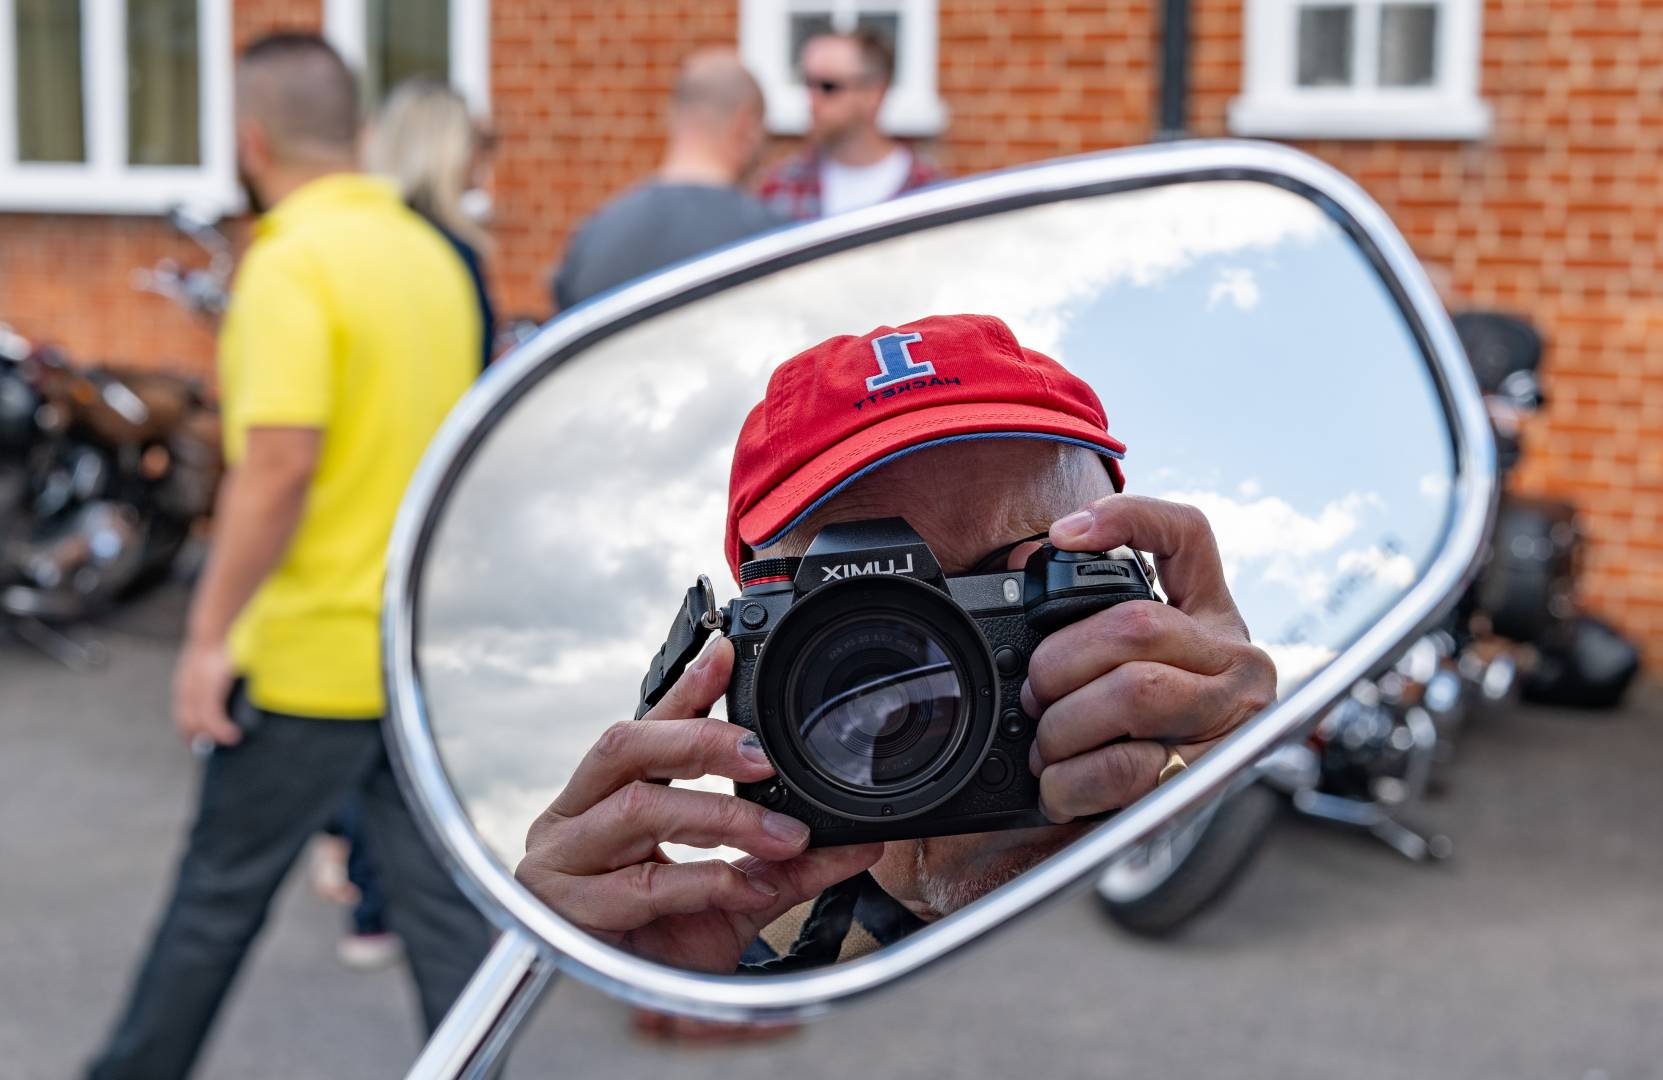 The Sigma and Panasonic Lumix S1 create a very handleable and effective combination (Image Mike Evans)